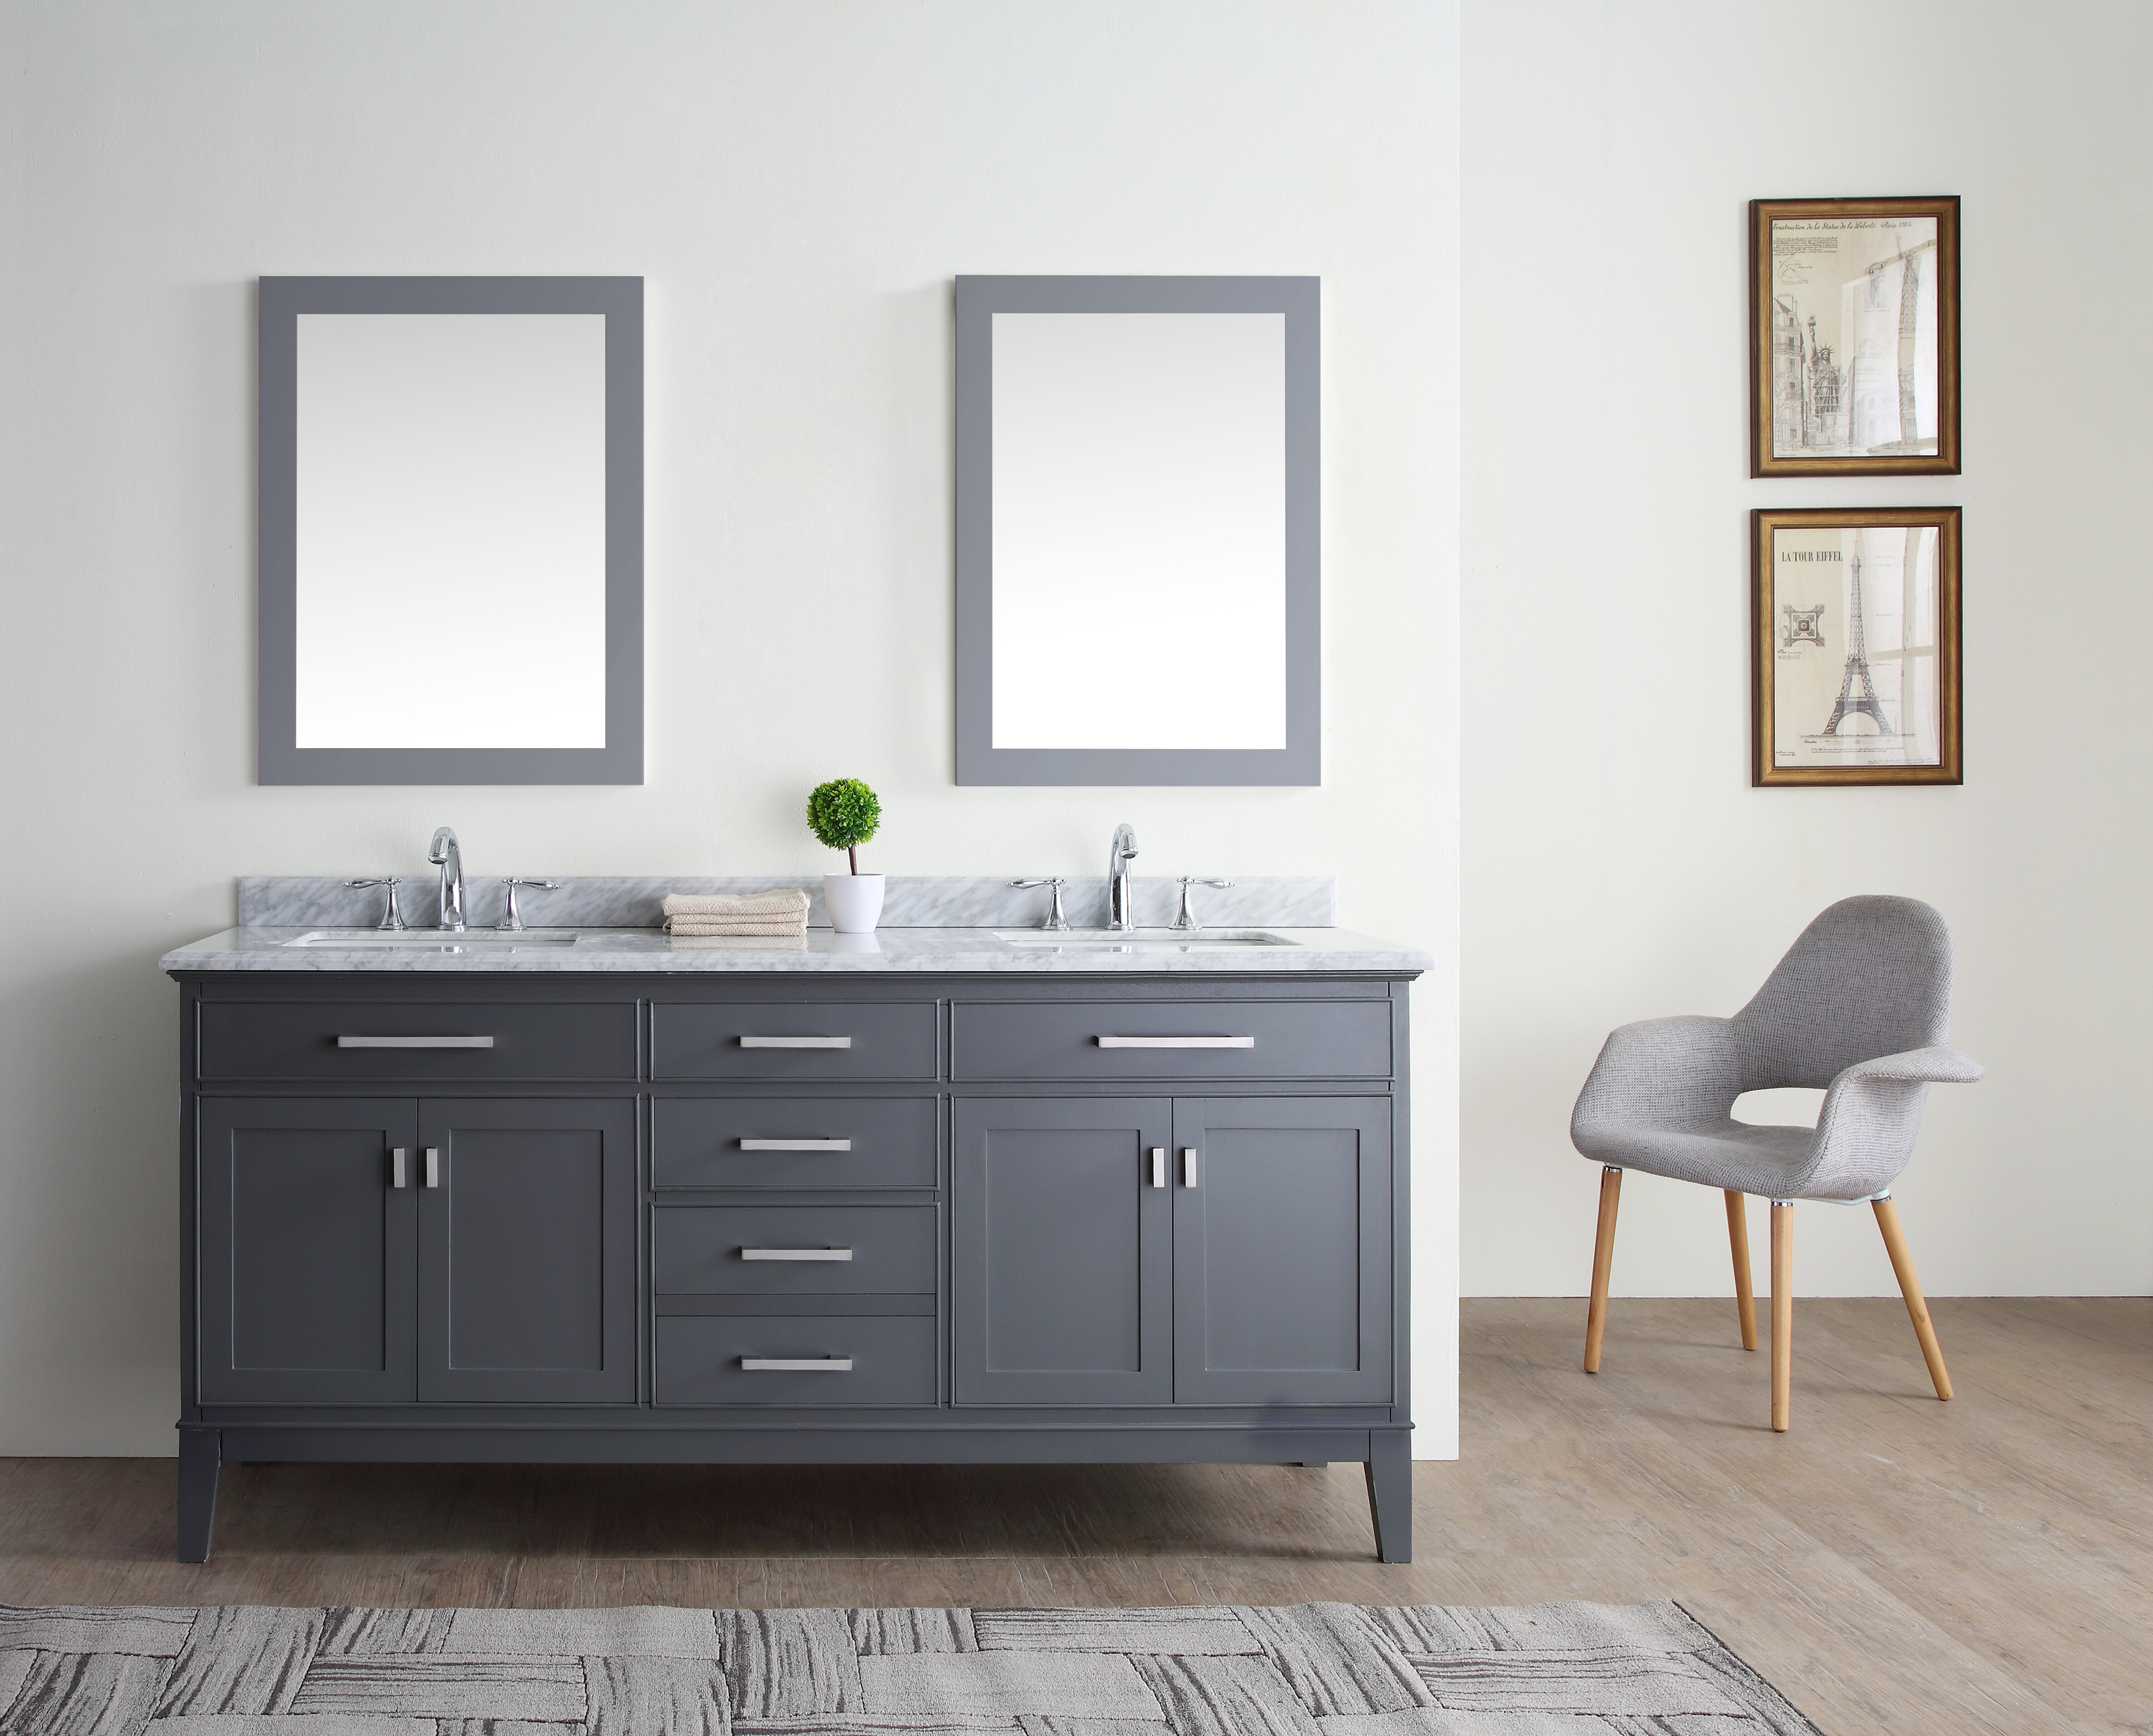 Vanity Dimensions How To Find The Size For You Wayfair